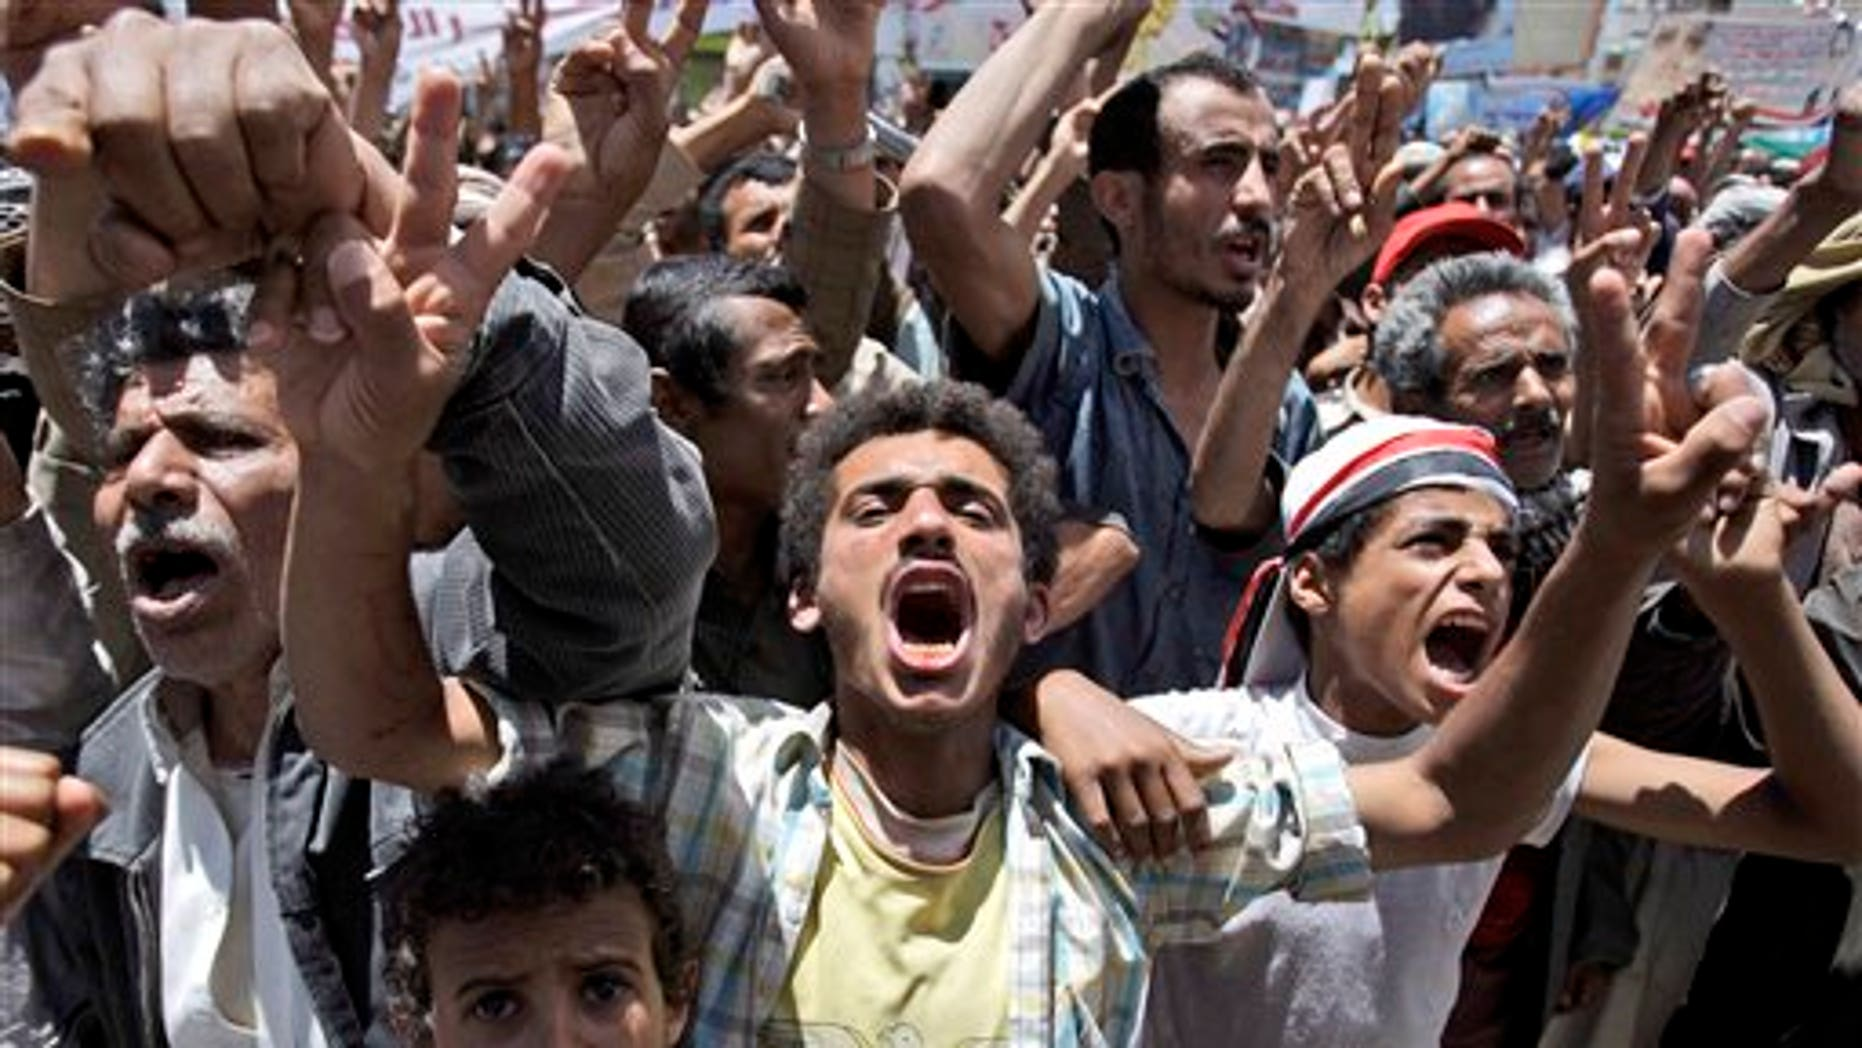 May 24: Anti-government protestors react during a demonstration demanding the resignation of Yemeni President Ali Abdullah Saleh, in Sanaa, Yemen. Fighters for Yemen's largest tribe sealed off key government buildings and barricaded streets in the heart of the capital Tuesday as the revolt against President Ali Abdullah Saleh sharply escalated after militiamen turned their guns against government forces. (AP)